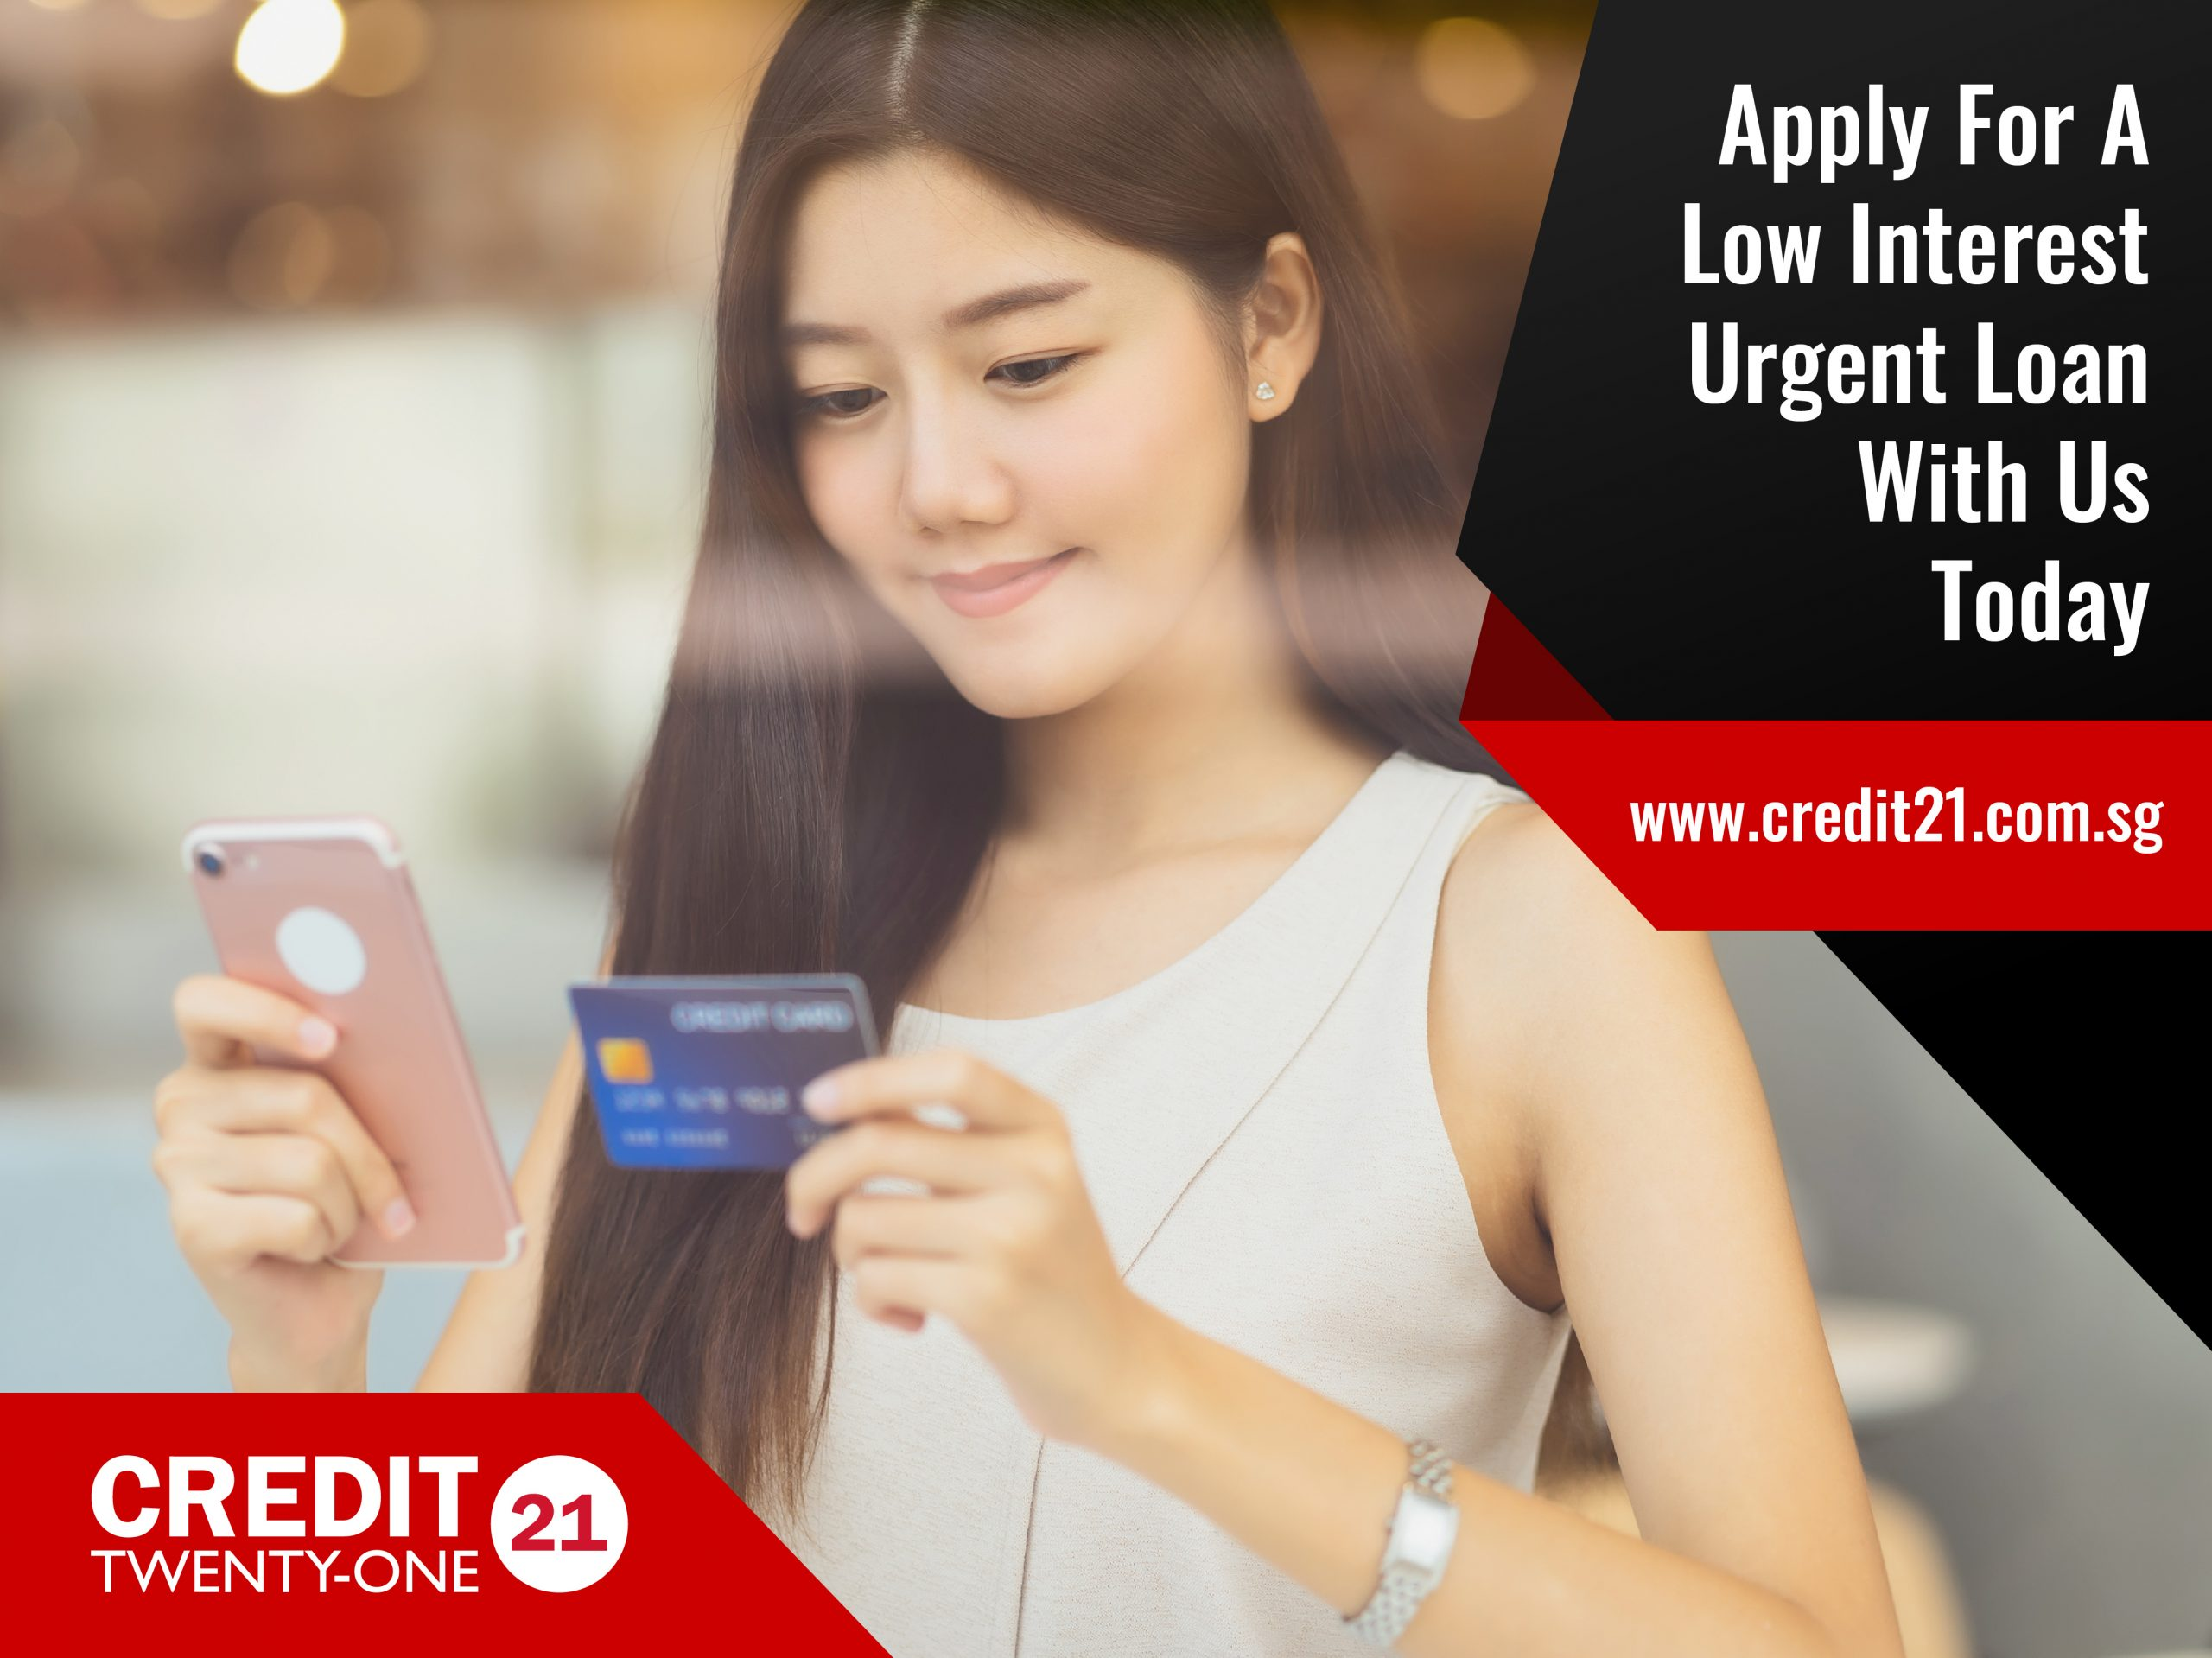 Apply For An Urgent Loan To Solve All Your Financial Emergencies (Low Interest Rates With Flexible Loan Tenures)